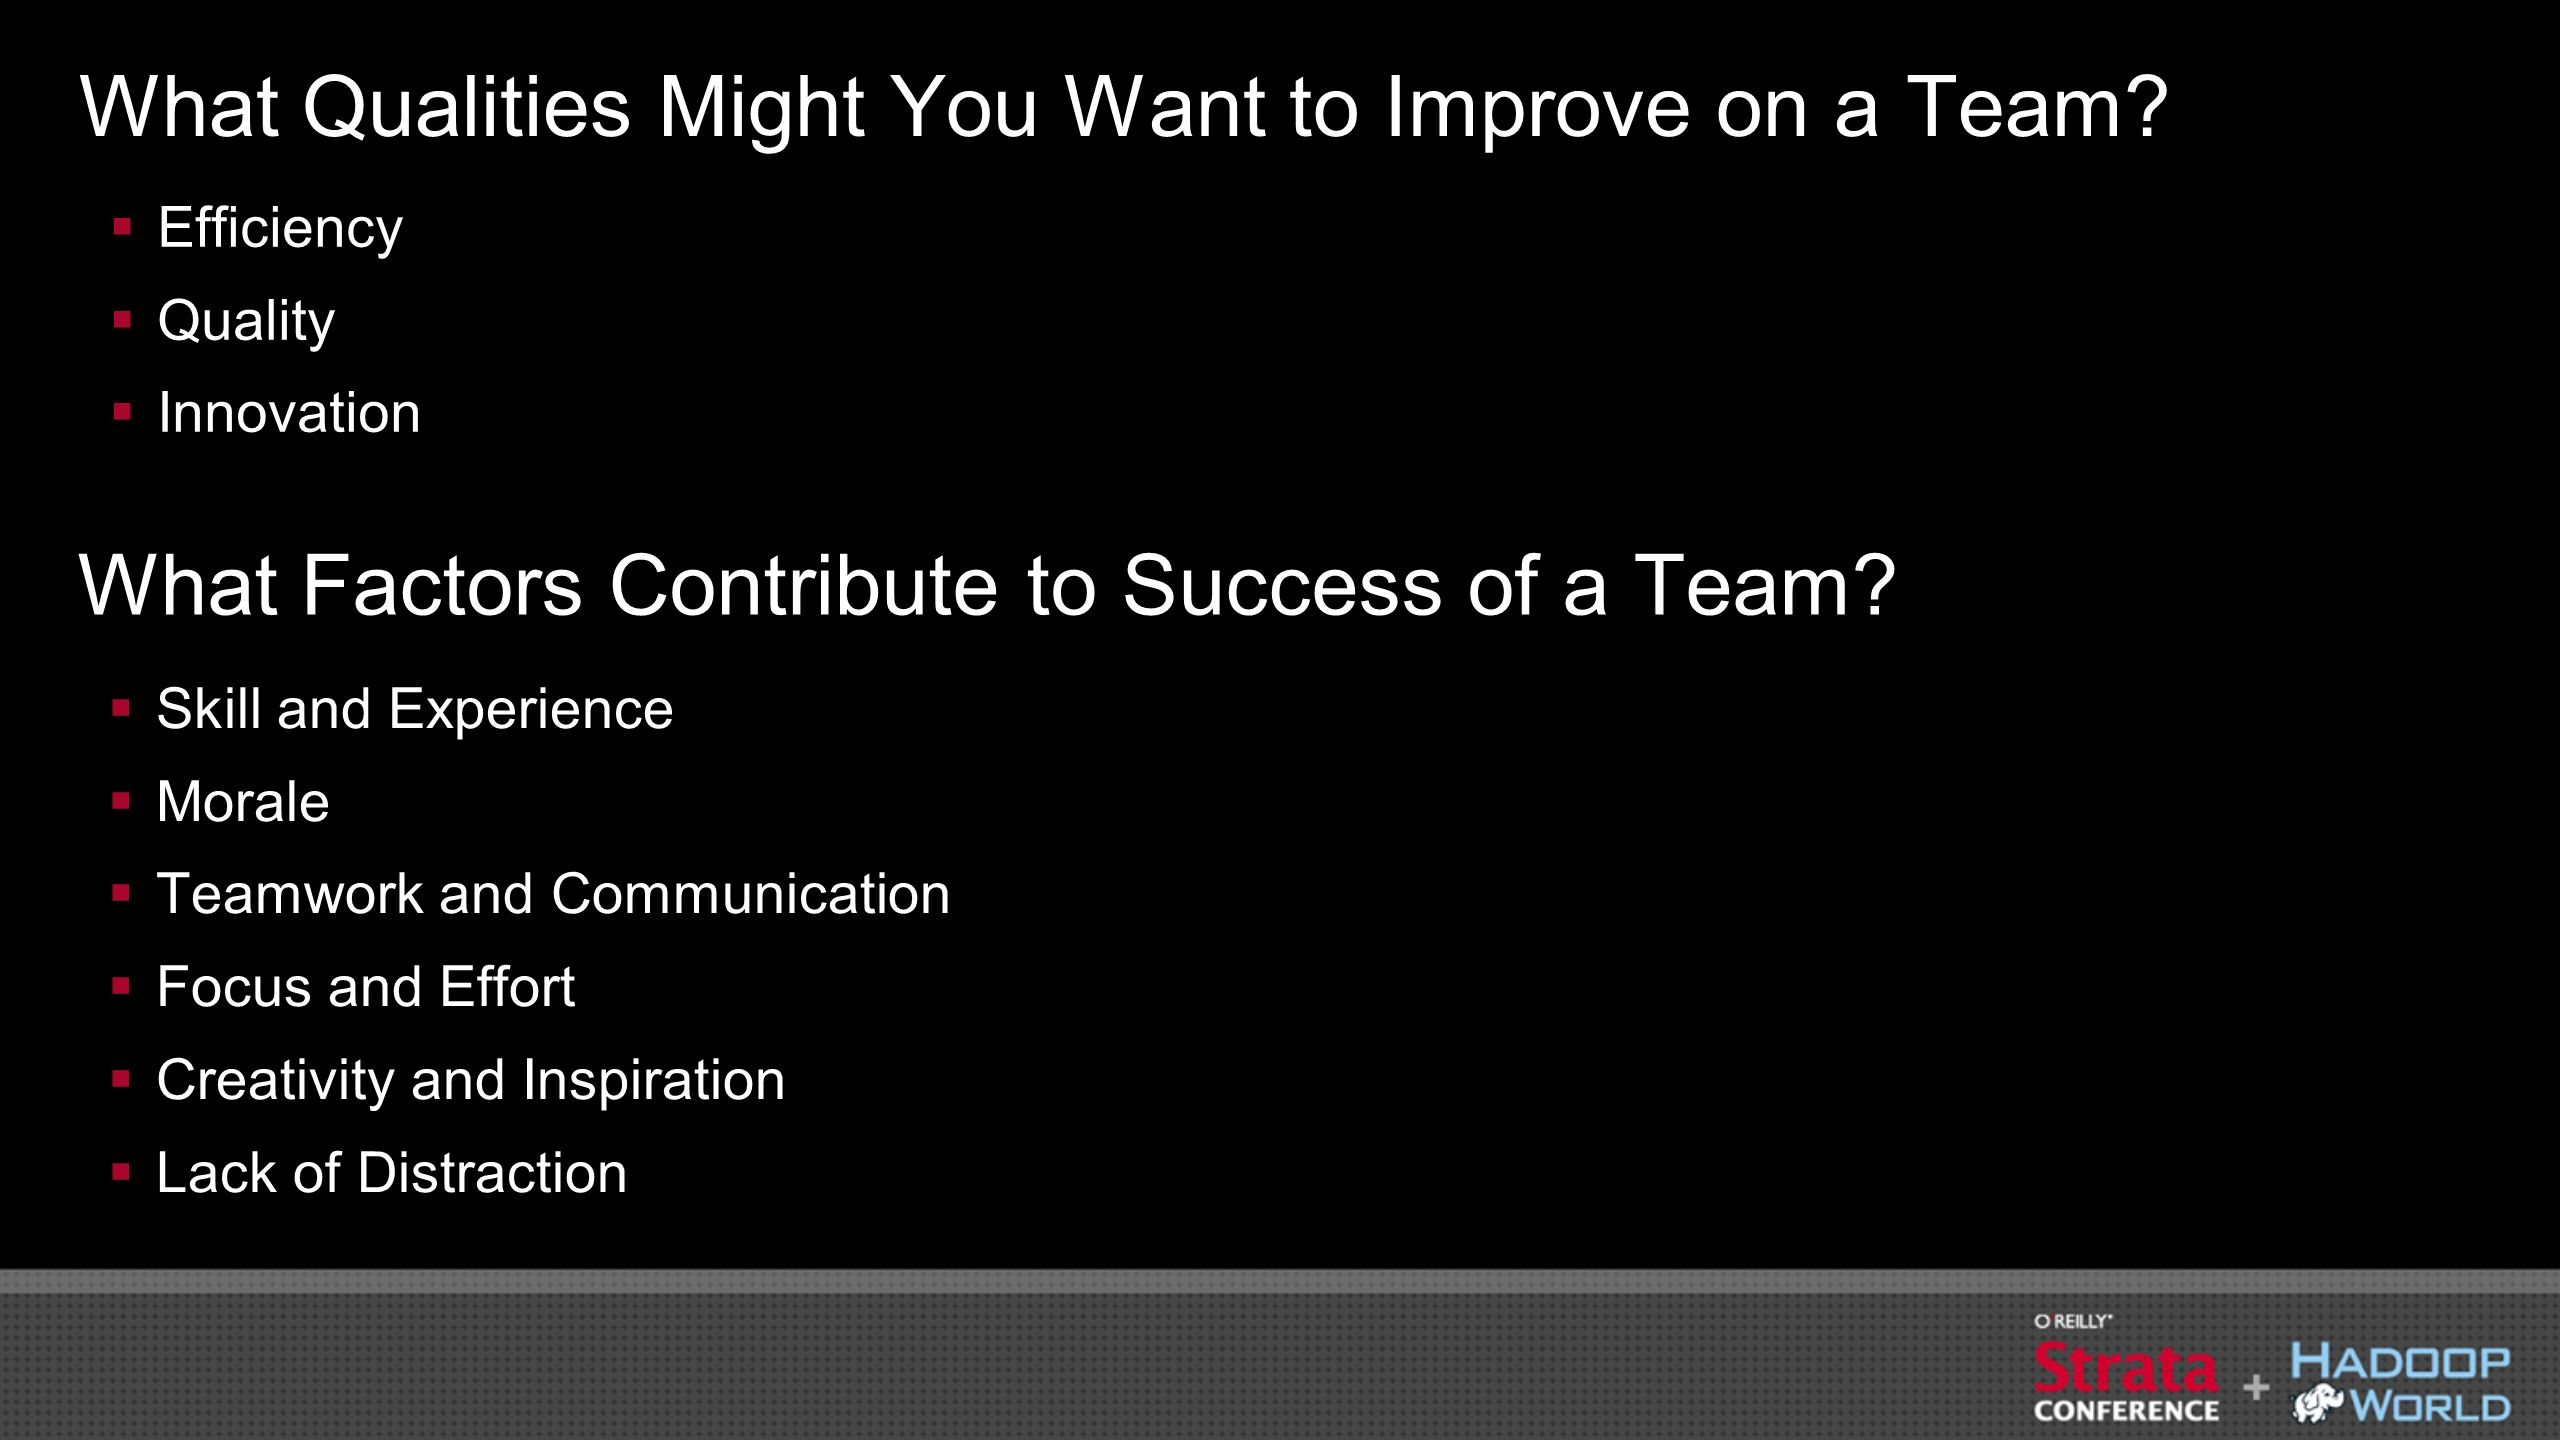 What Qualities Might You Want to Improve on a Team.